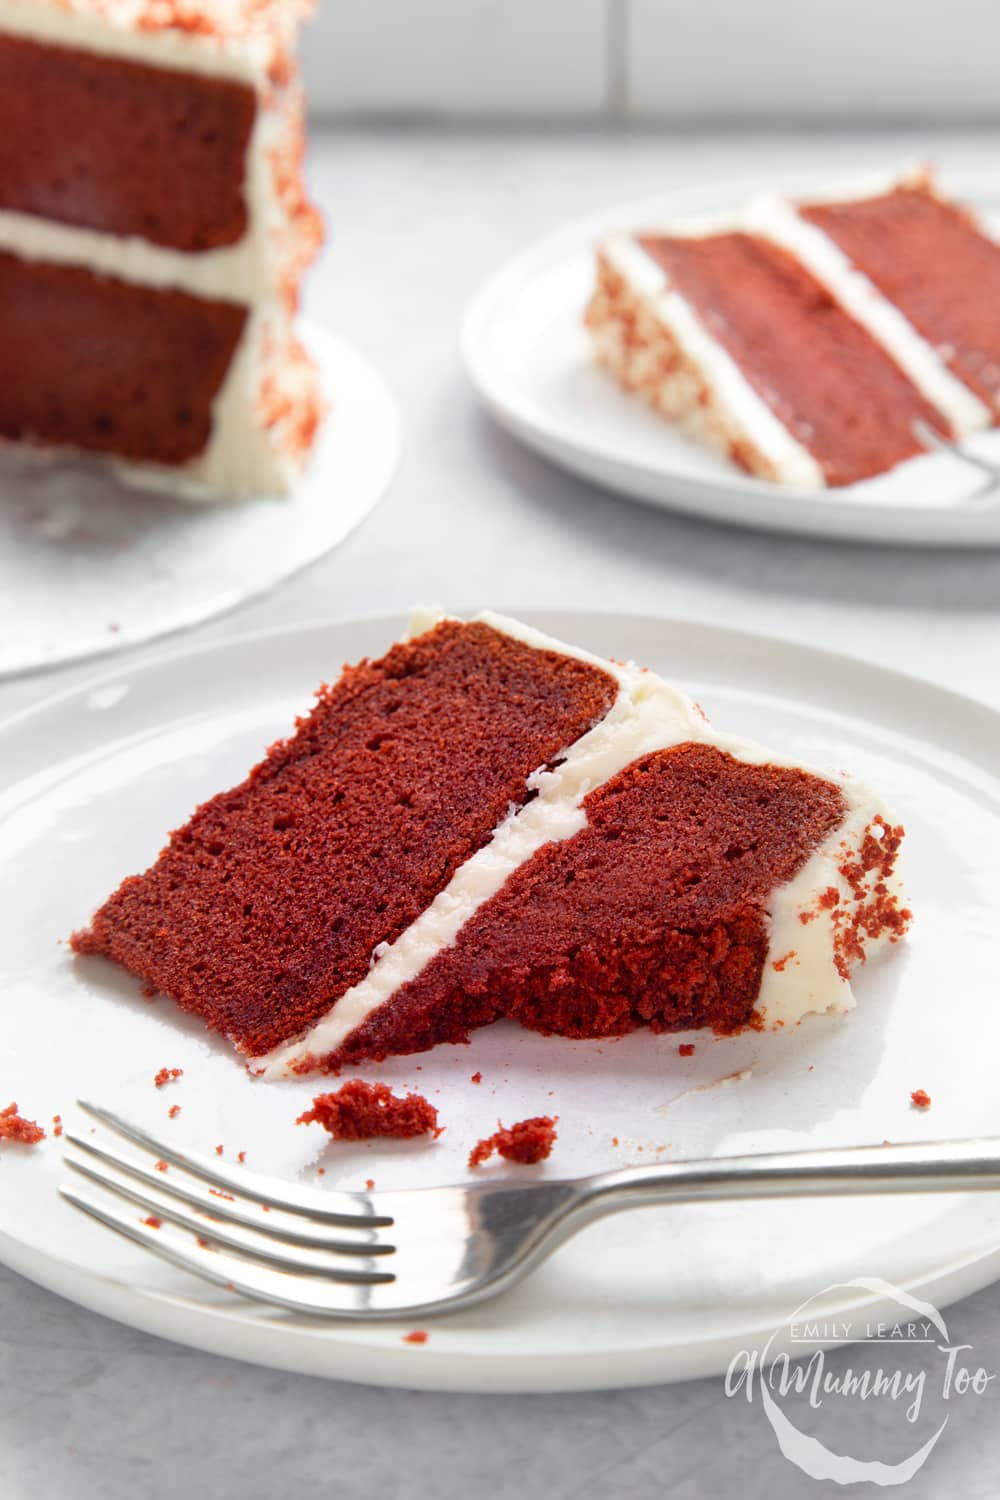 A slice of filled red velvet cake on a white plate. A fork rests on the plate. Some of the slice has been eaten. More cake is shown in the background.